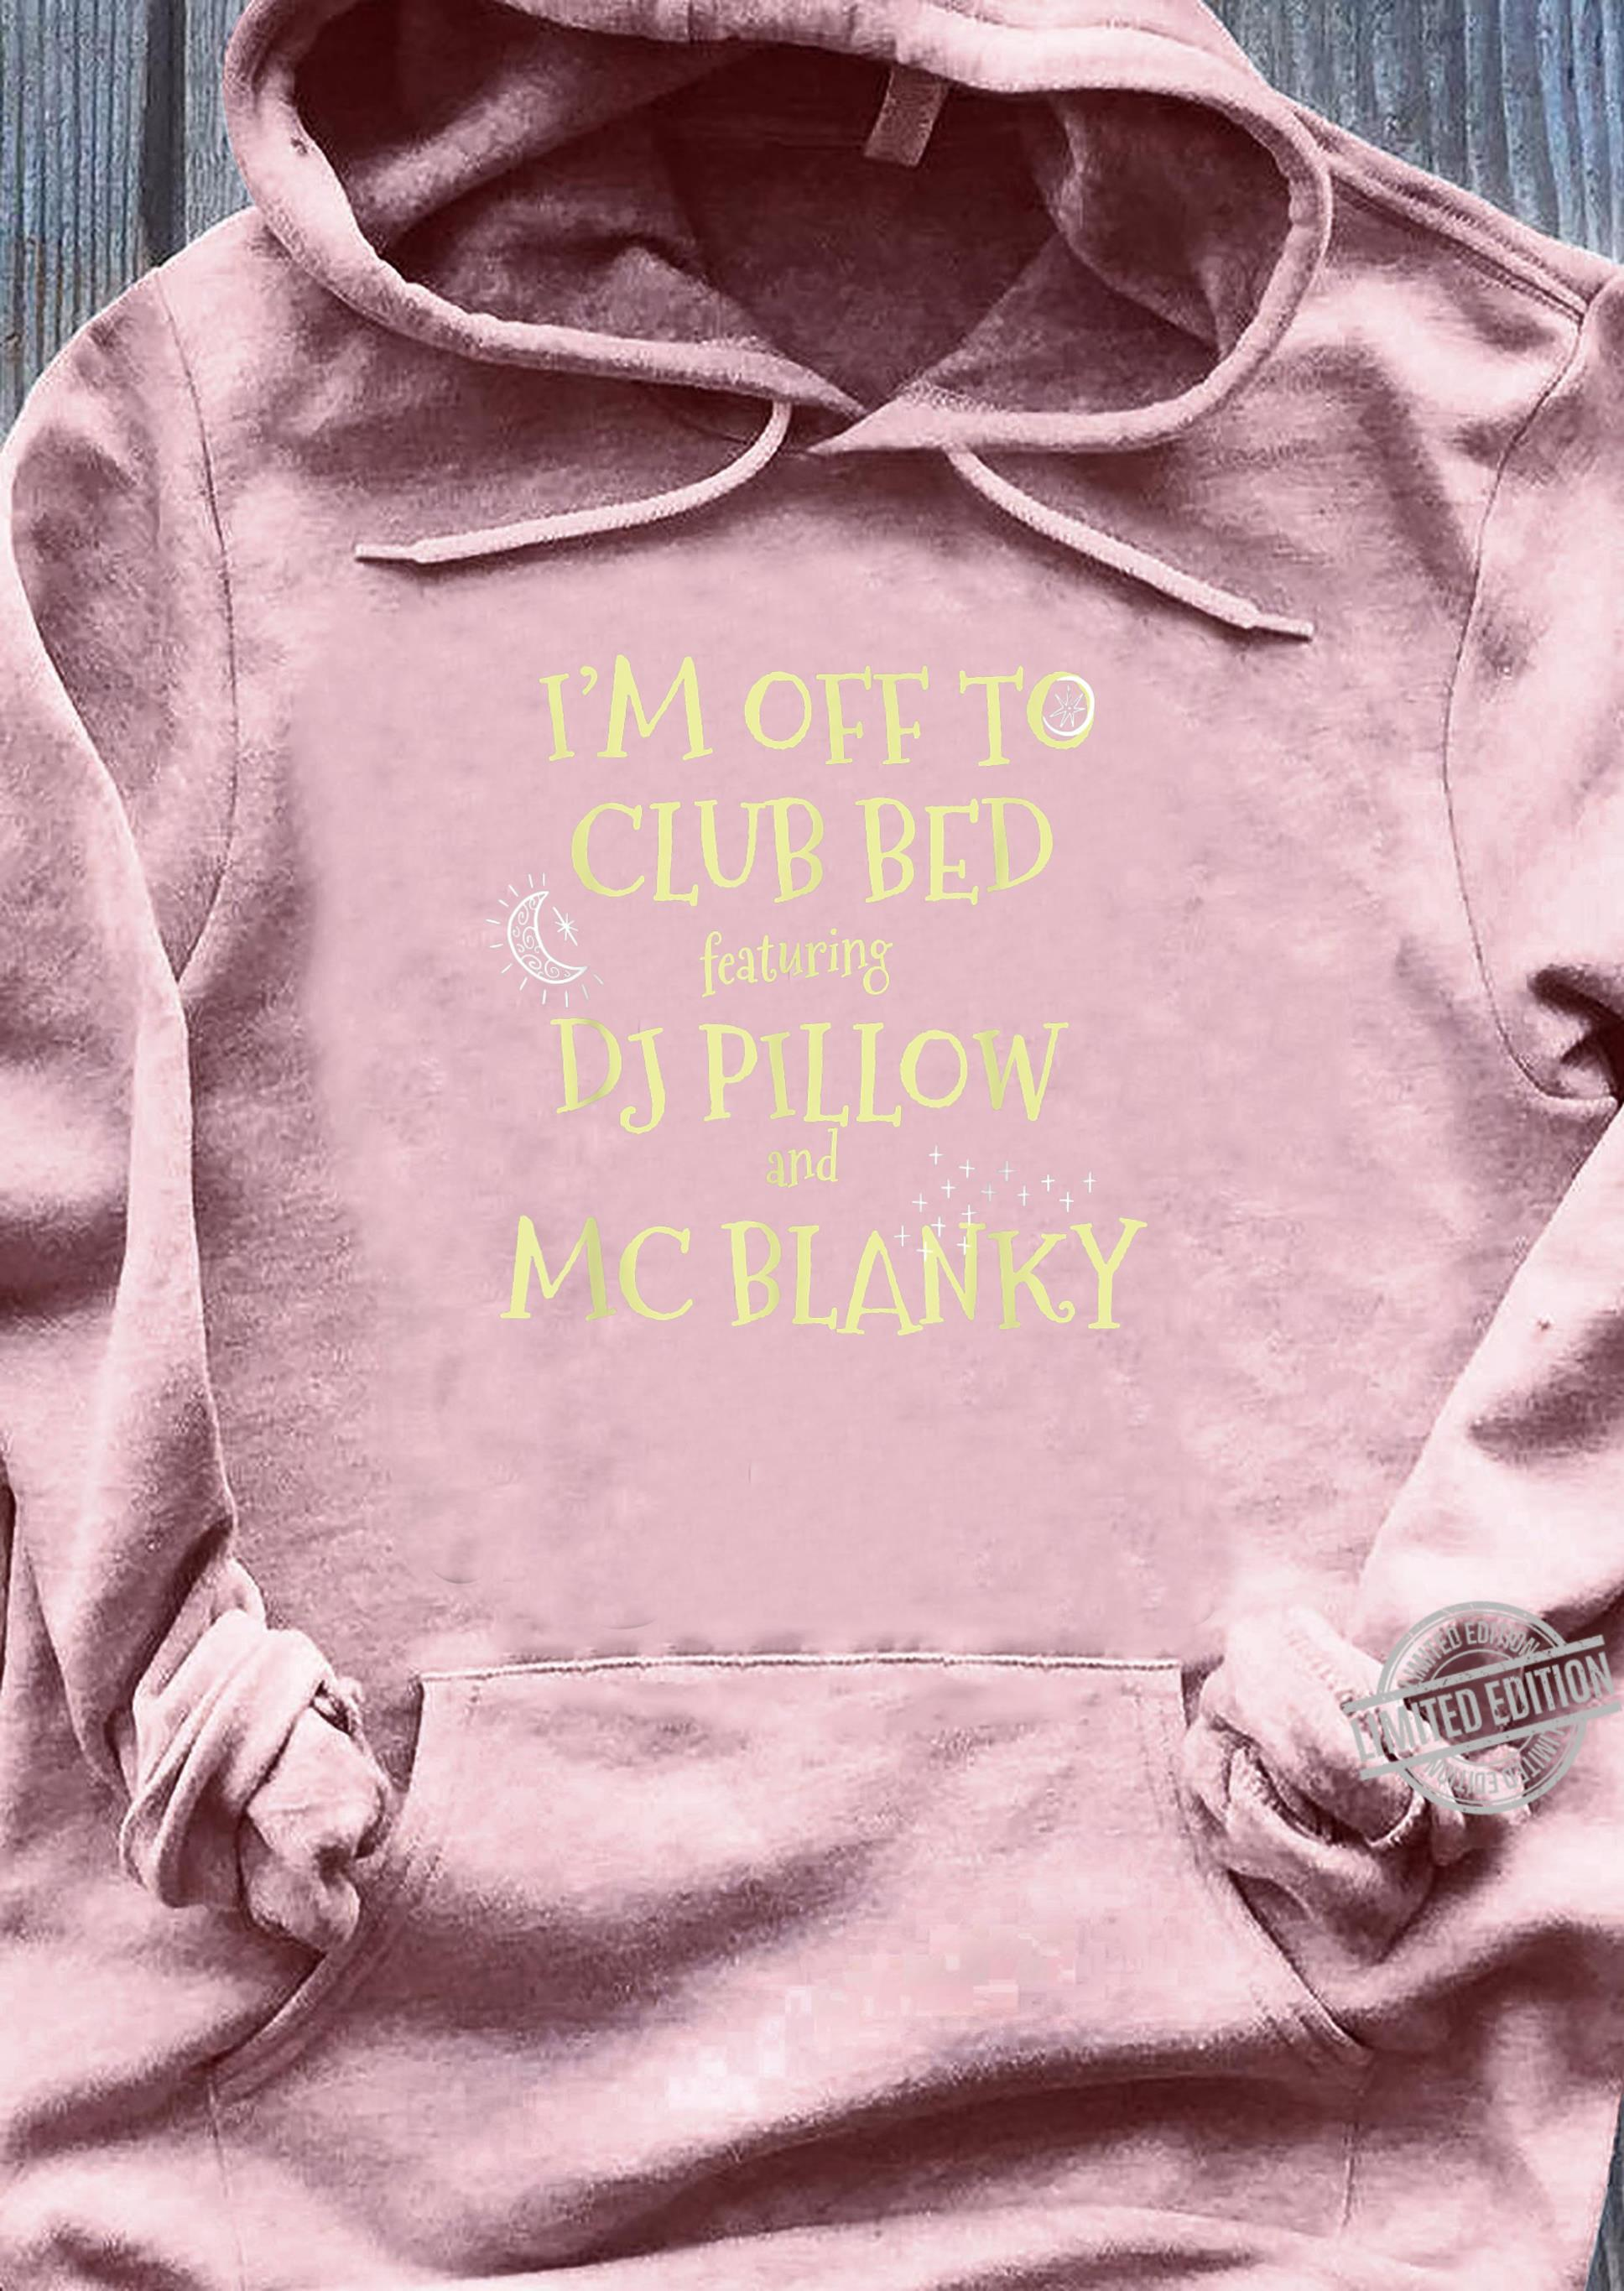 Funny I Am Off To Club Bed Featuring MC Pillow and DJ Blanky Shirt sweater